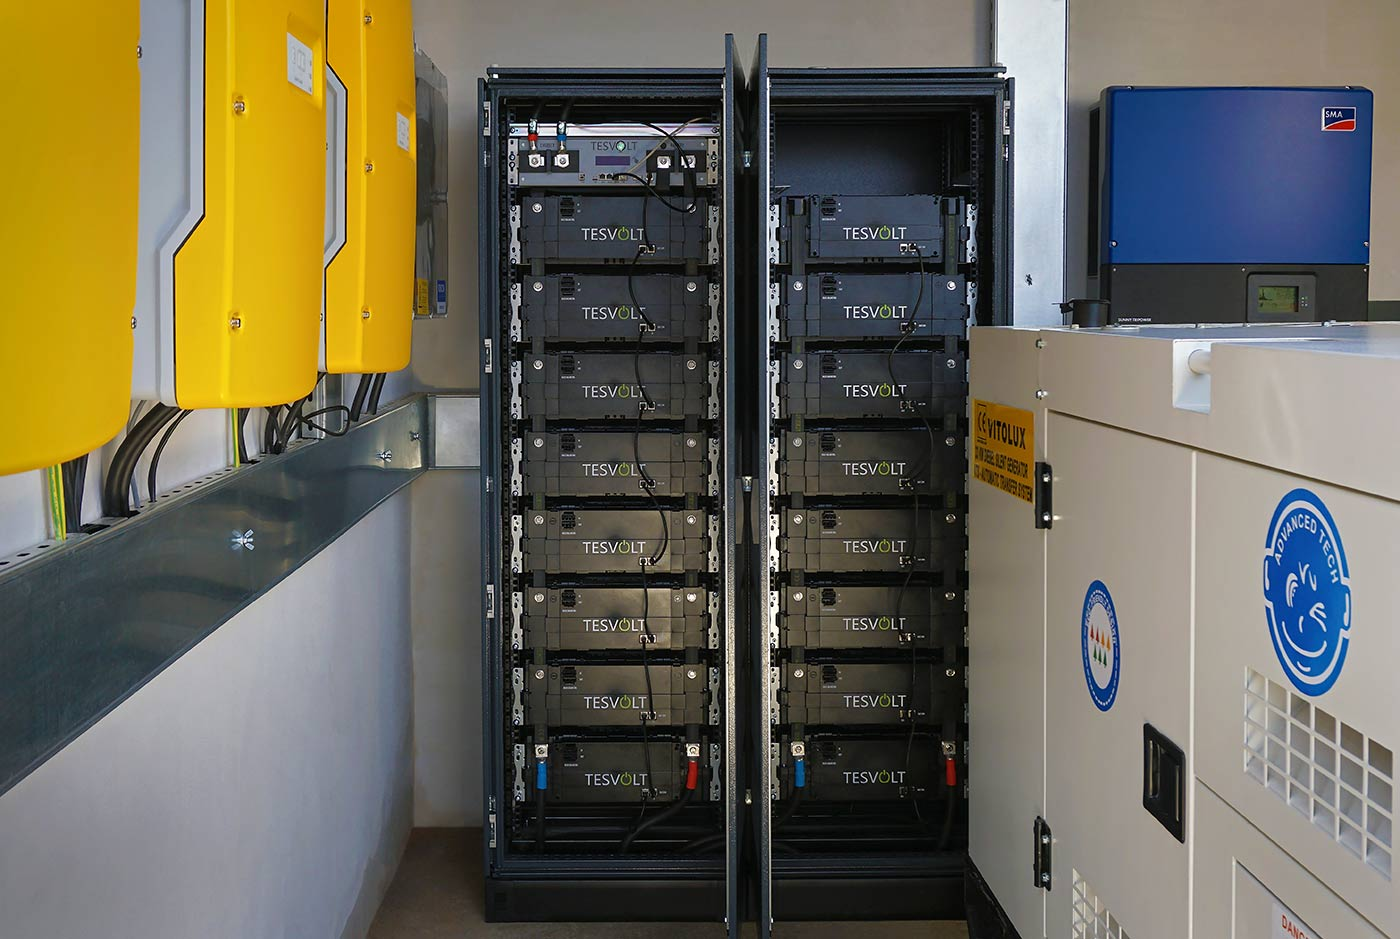 Storage energy system TESVOLT in double rack